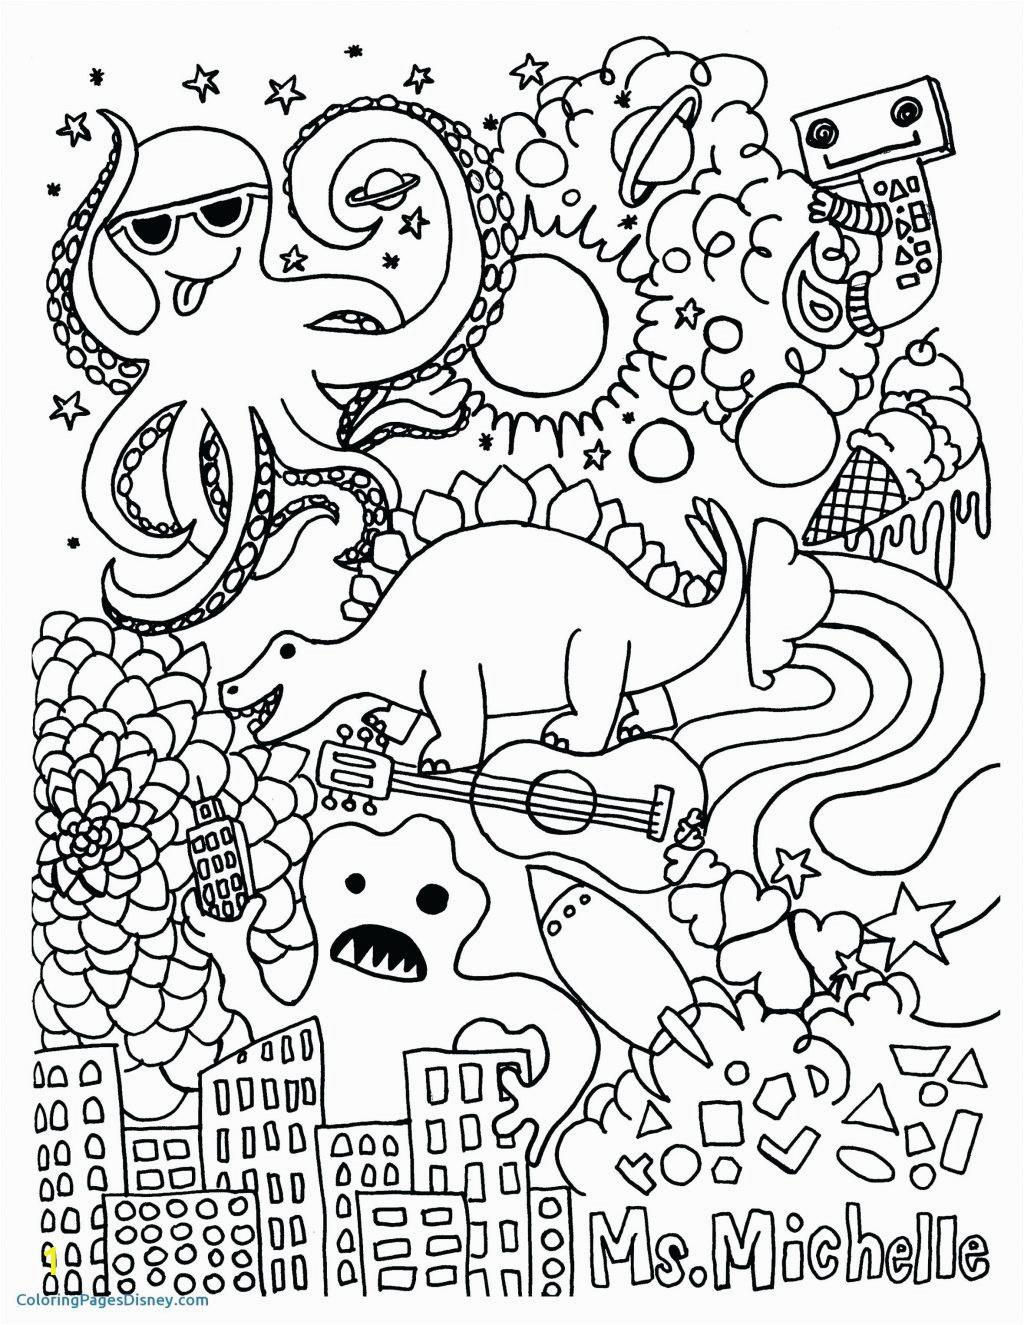 printable mindful coloring pages unique color pages color pages super hero squad coloring of printable mindful coloring pages